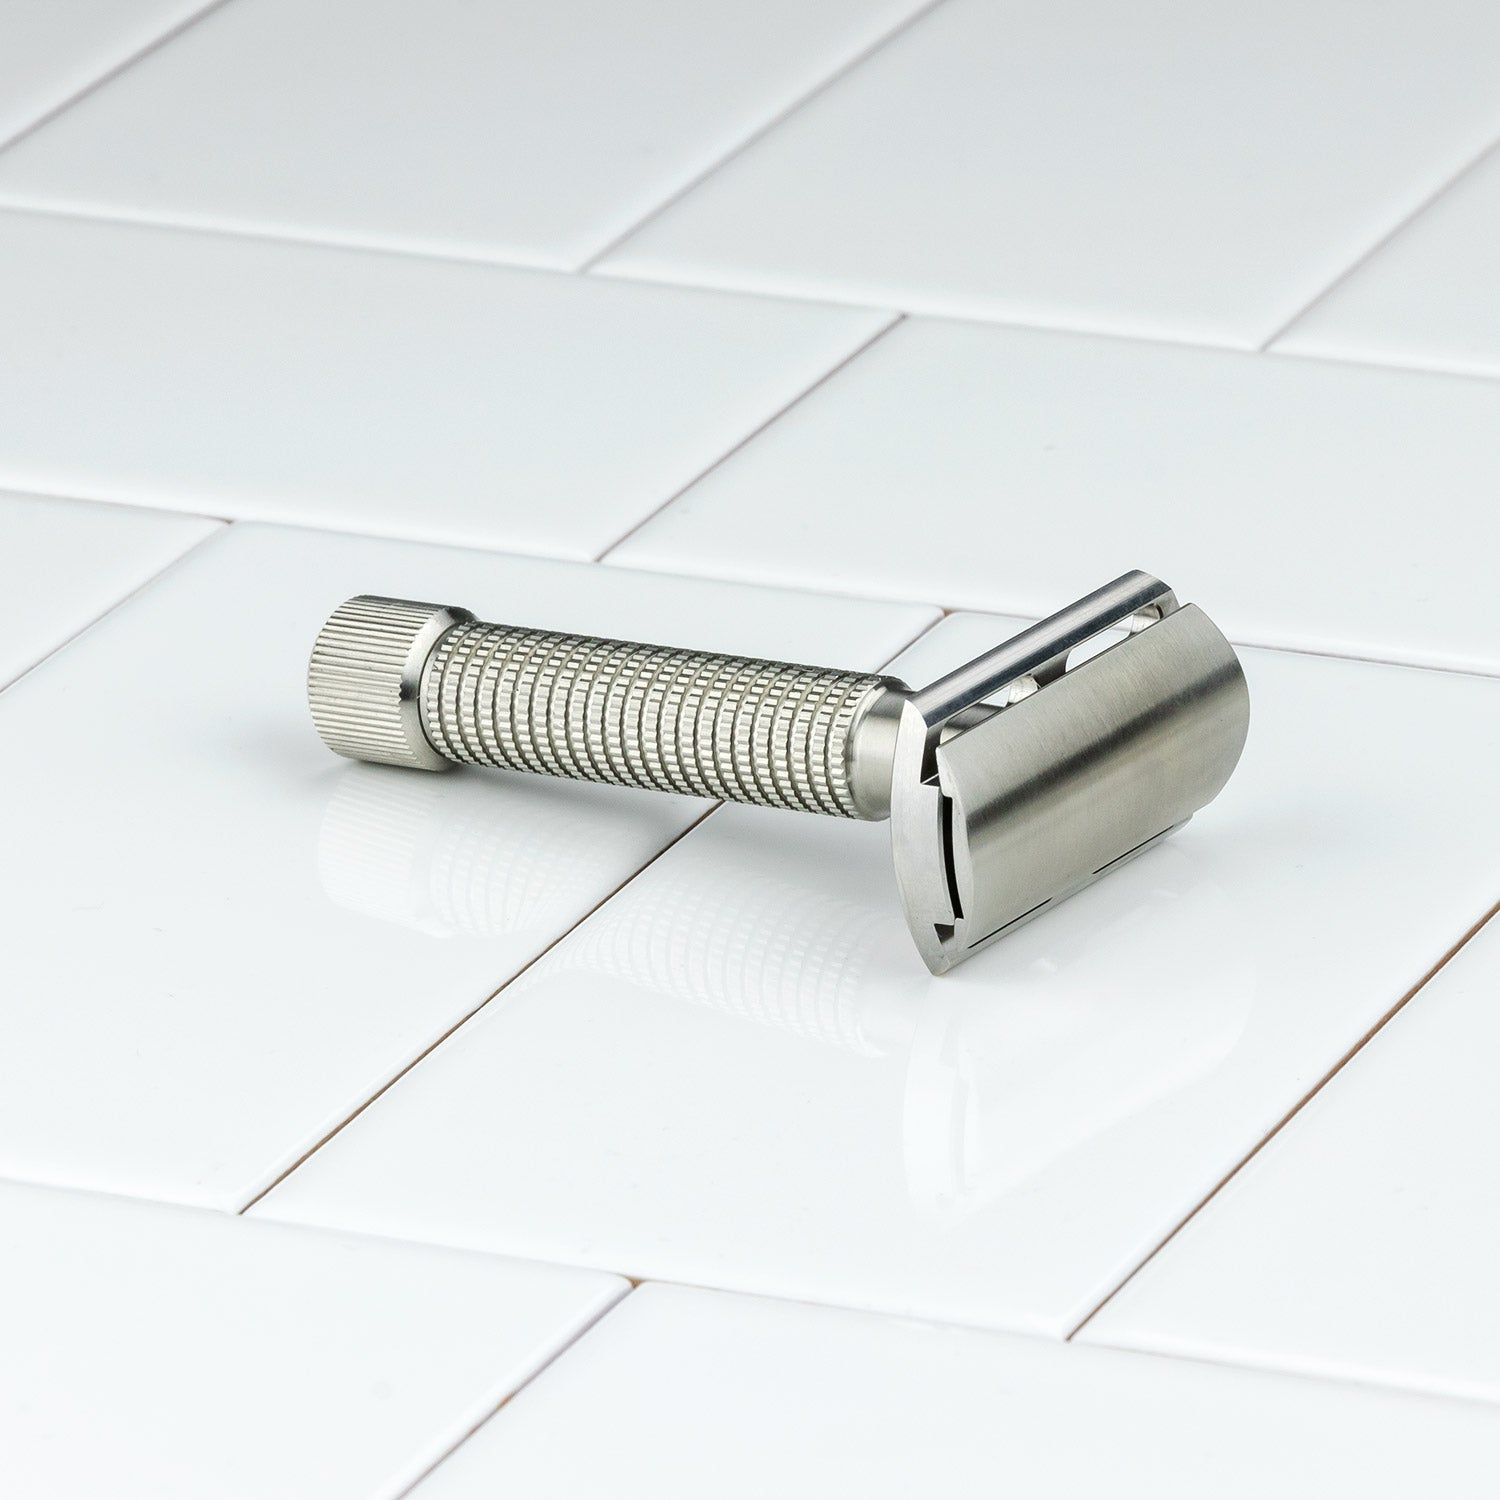 Rex Supply Co. Envoy DE Safety Razor